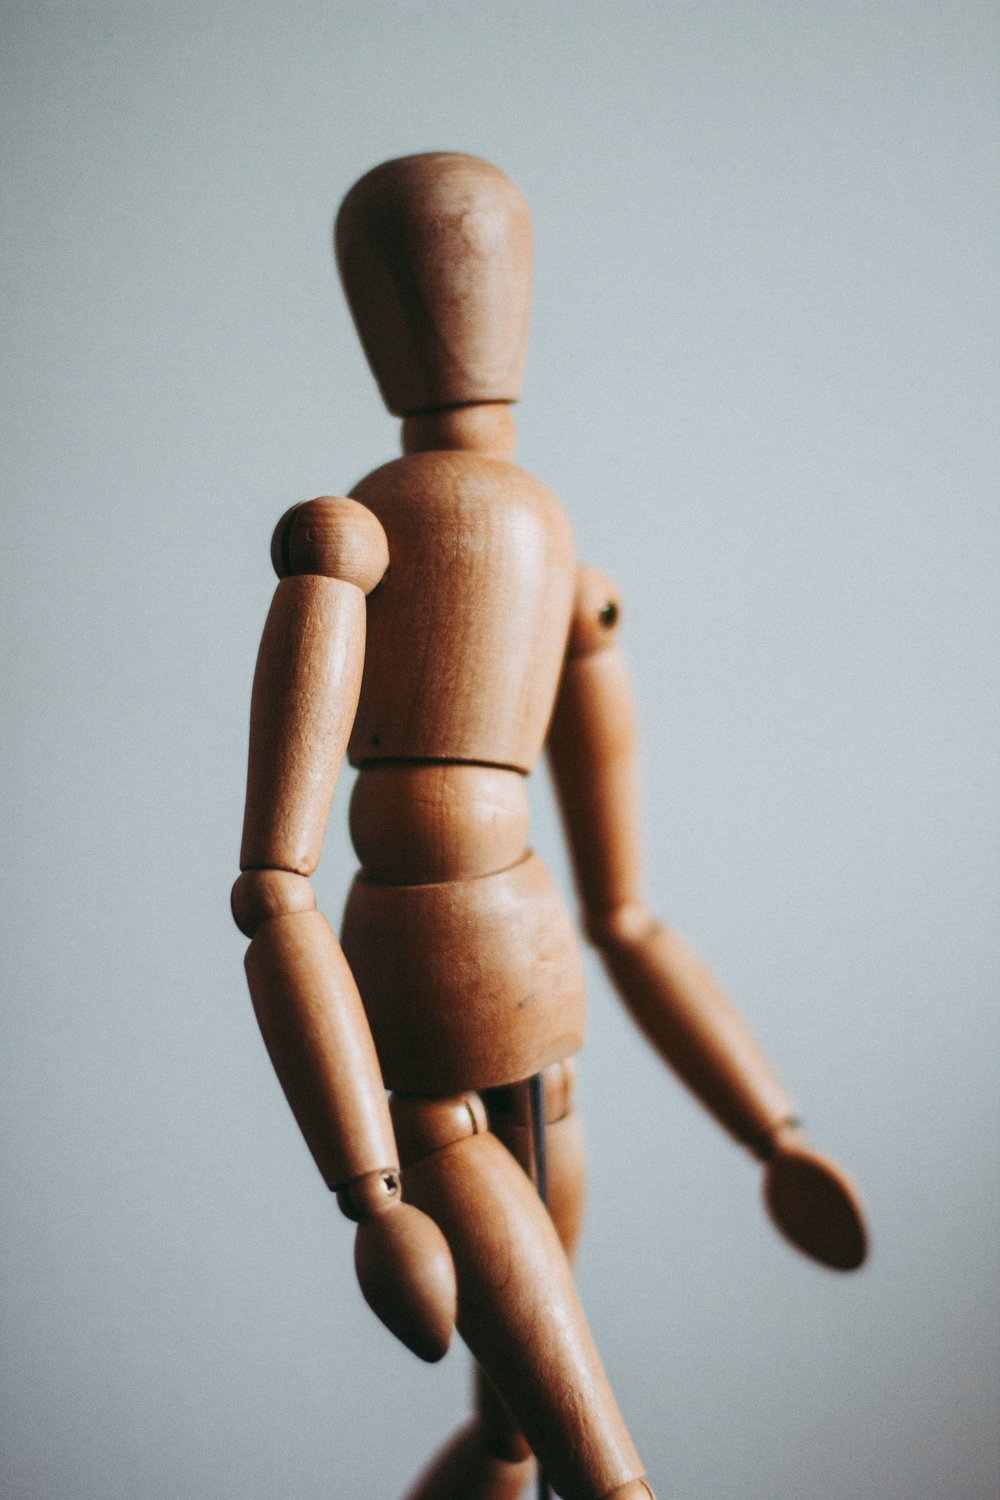 Photo by  Kira auf der Heide  on  Unsplash    [Image Description: A wooden, articulated figure doll stands against a grey background]